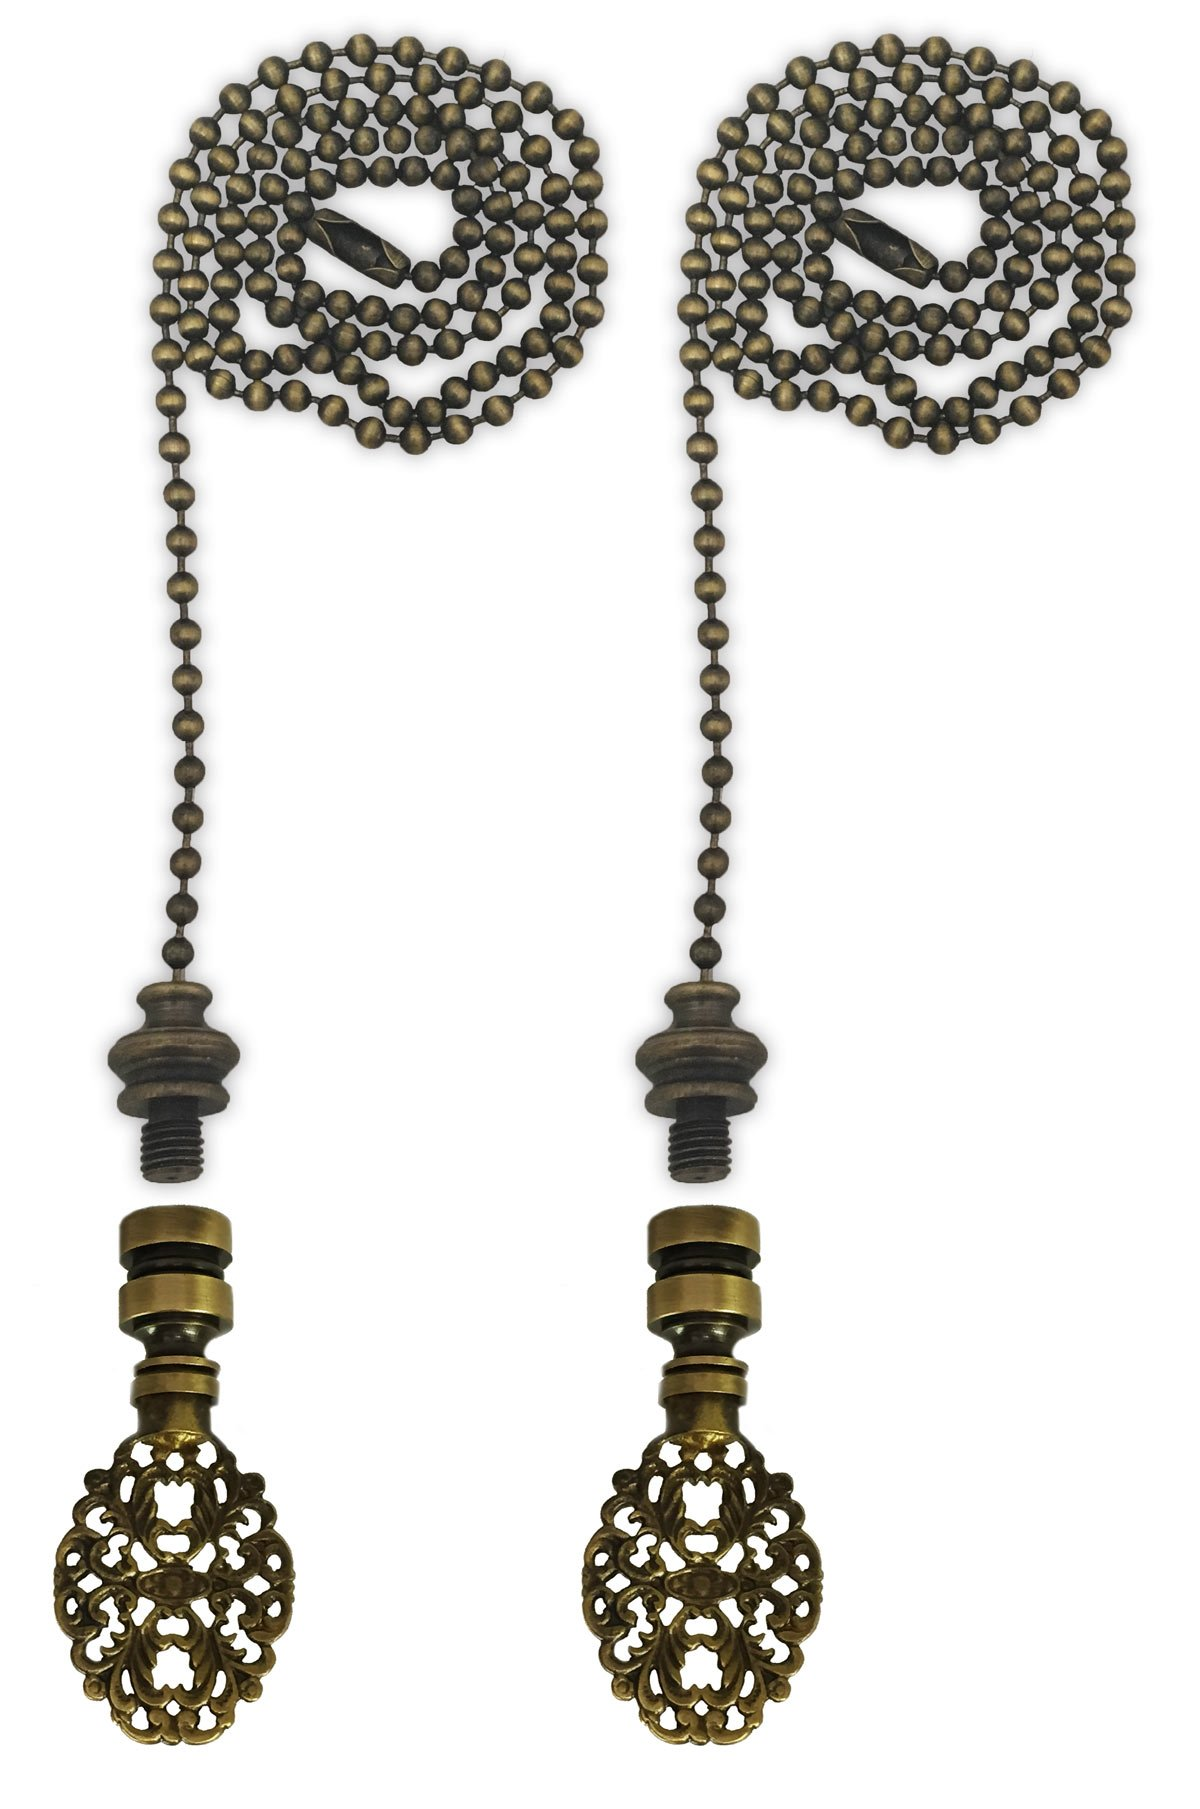 Royal Designs Fan Pull Chain with Oval Filigree Finial – Antique Brass – Set of 2